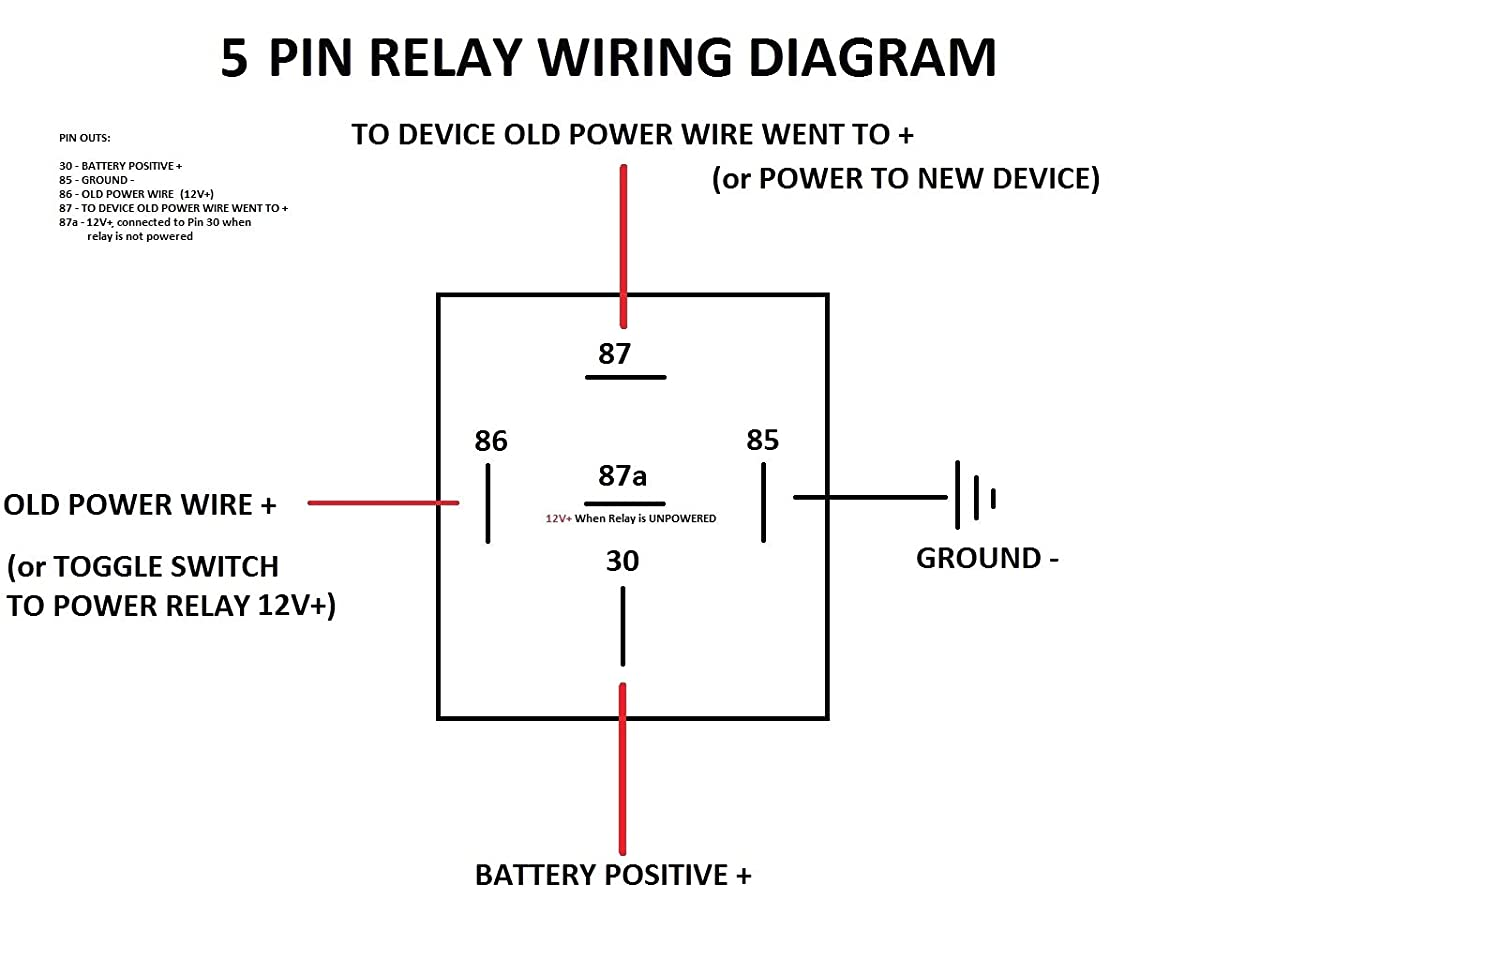 wiring diagram 30 amp relay wiring diagram sys wiring diagram 30 amp relay wiring diagram show 30 amp relay wiring diagram electric fan wiring diagram 30 amp relay